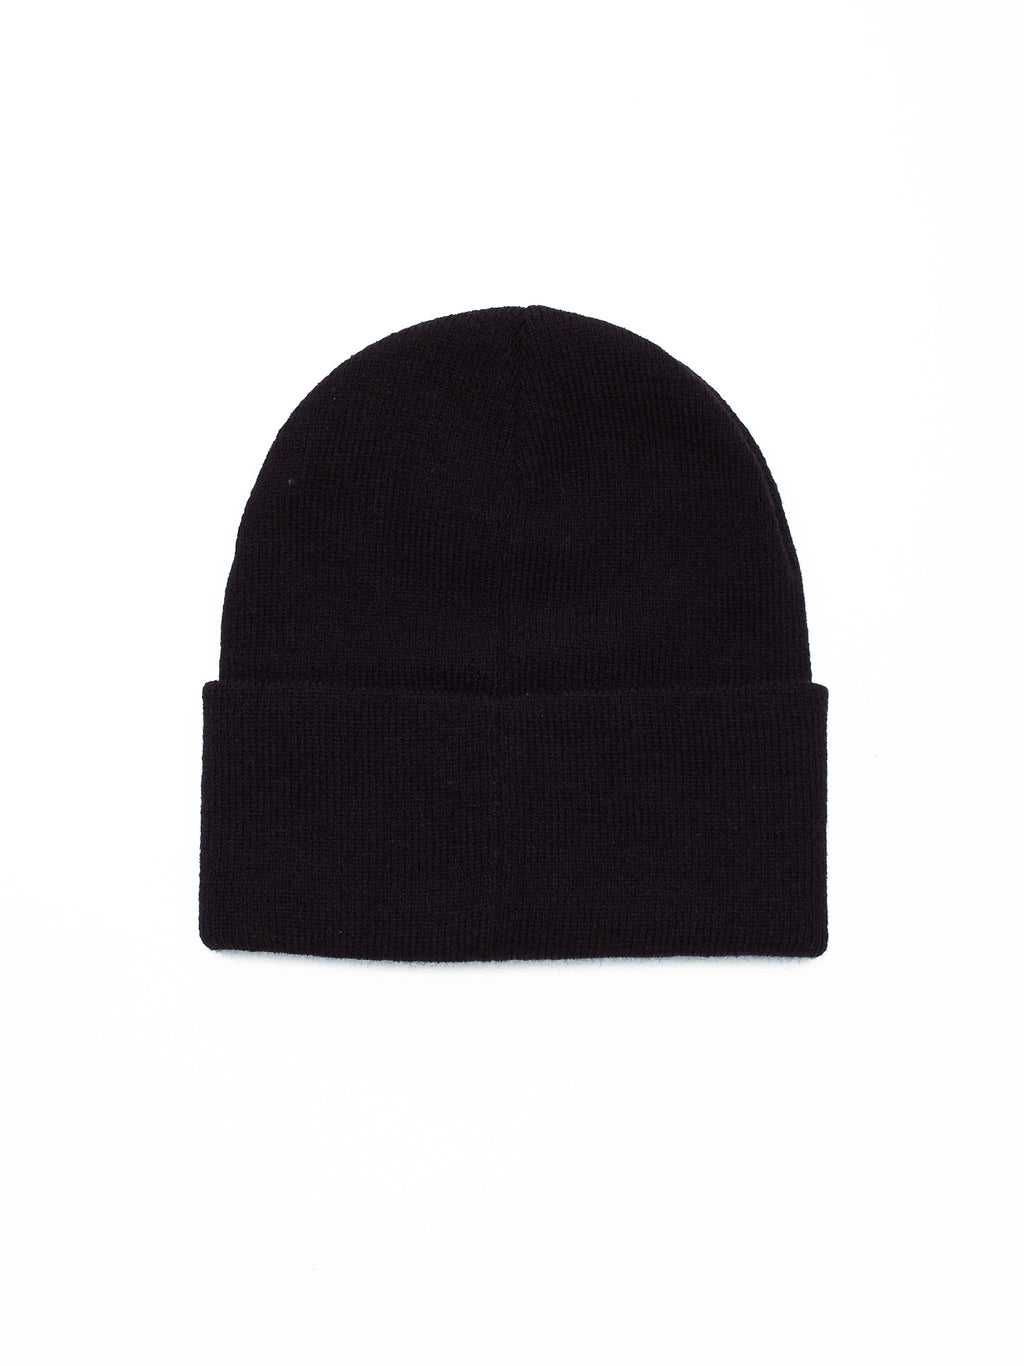 OBEY - Icon Eyes Beanie, Black